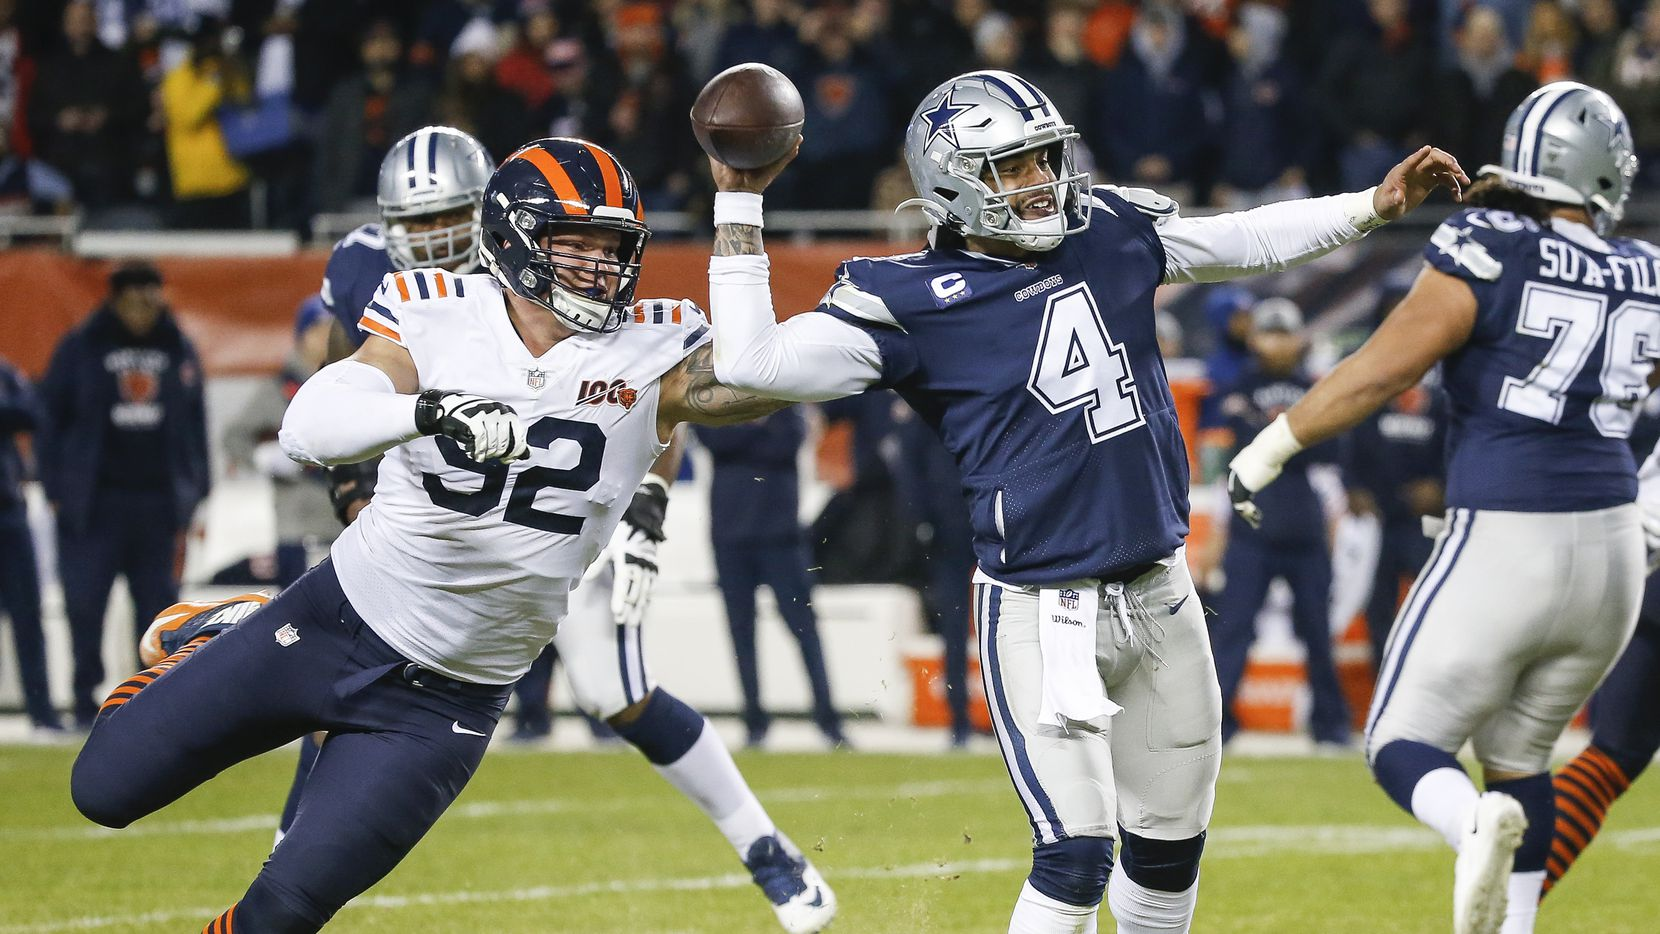 Dallas Cowboys quarterback Dak Prescott (4) fires off a pass before being brought down by Chicago Bears defensive end Brent Urban (92) during the second half a NFL matchup between the Dallas Cowboys and the Chicago Bears on Thursday, Dec. 5, 2019, at Soldier Field in Chicago. (Ryan Michalesko/The Dallas Morning News)